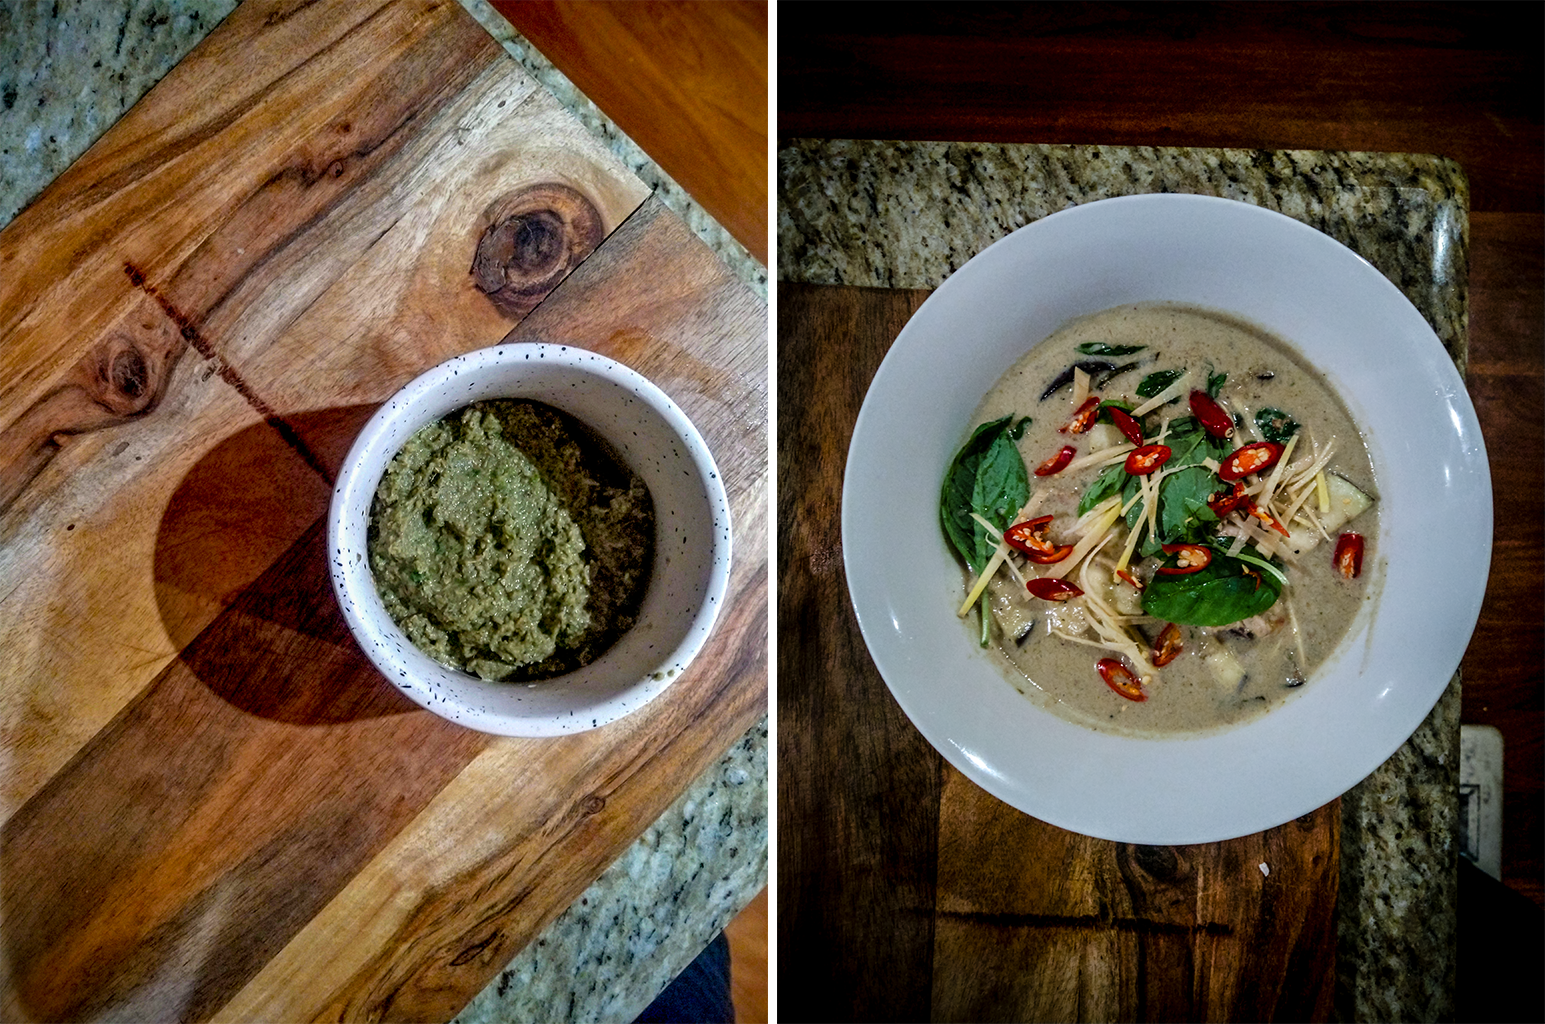 L: Overhead shot of a bowl of curry paste. R: Overhead shot of the finished bowl of curry.